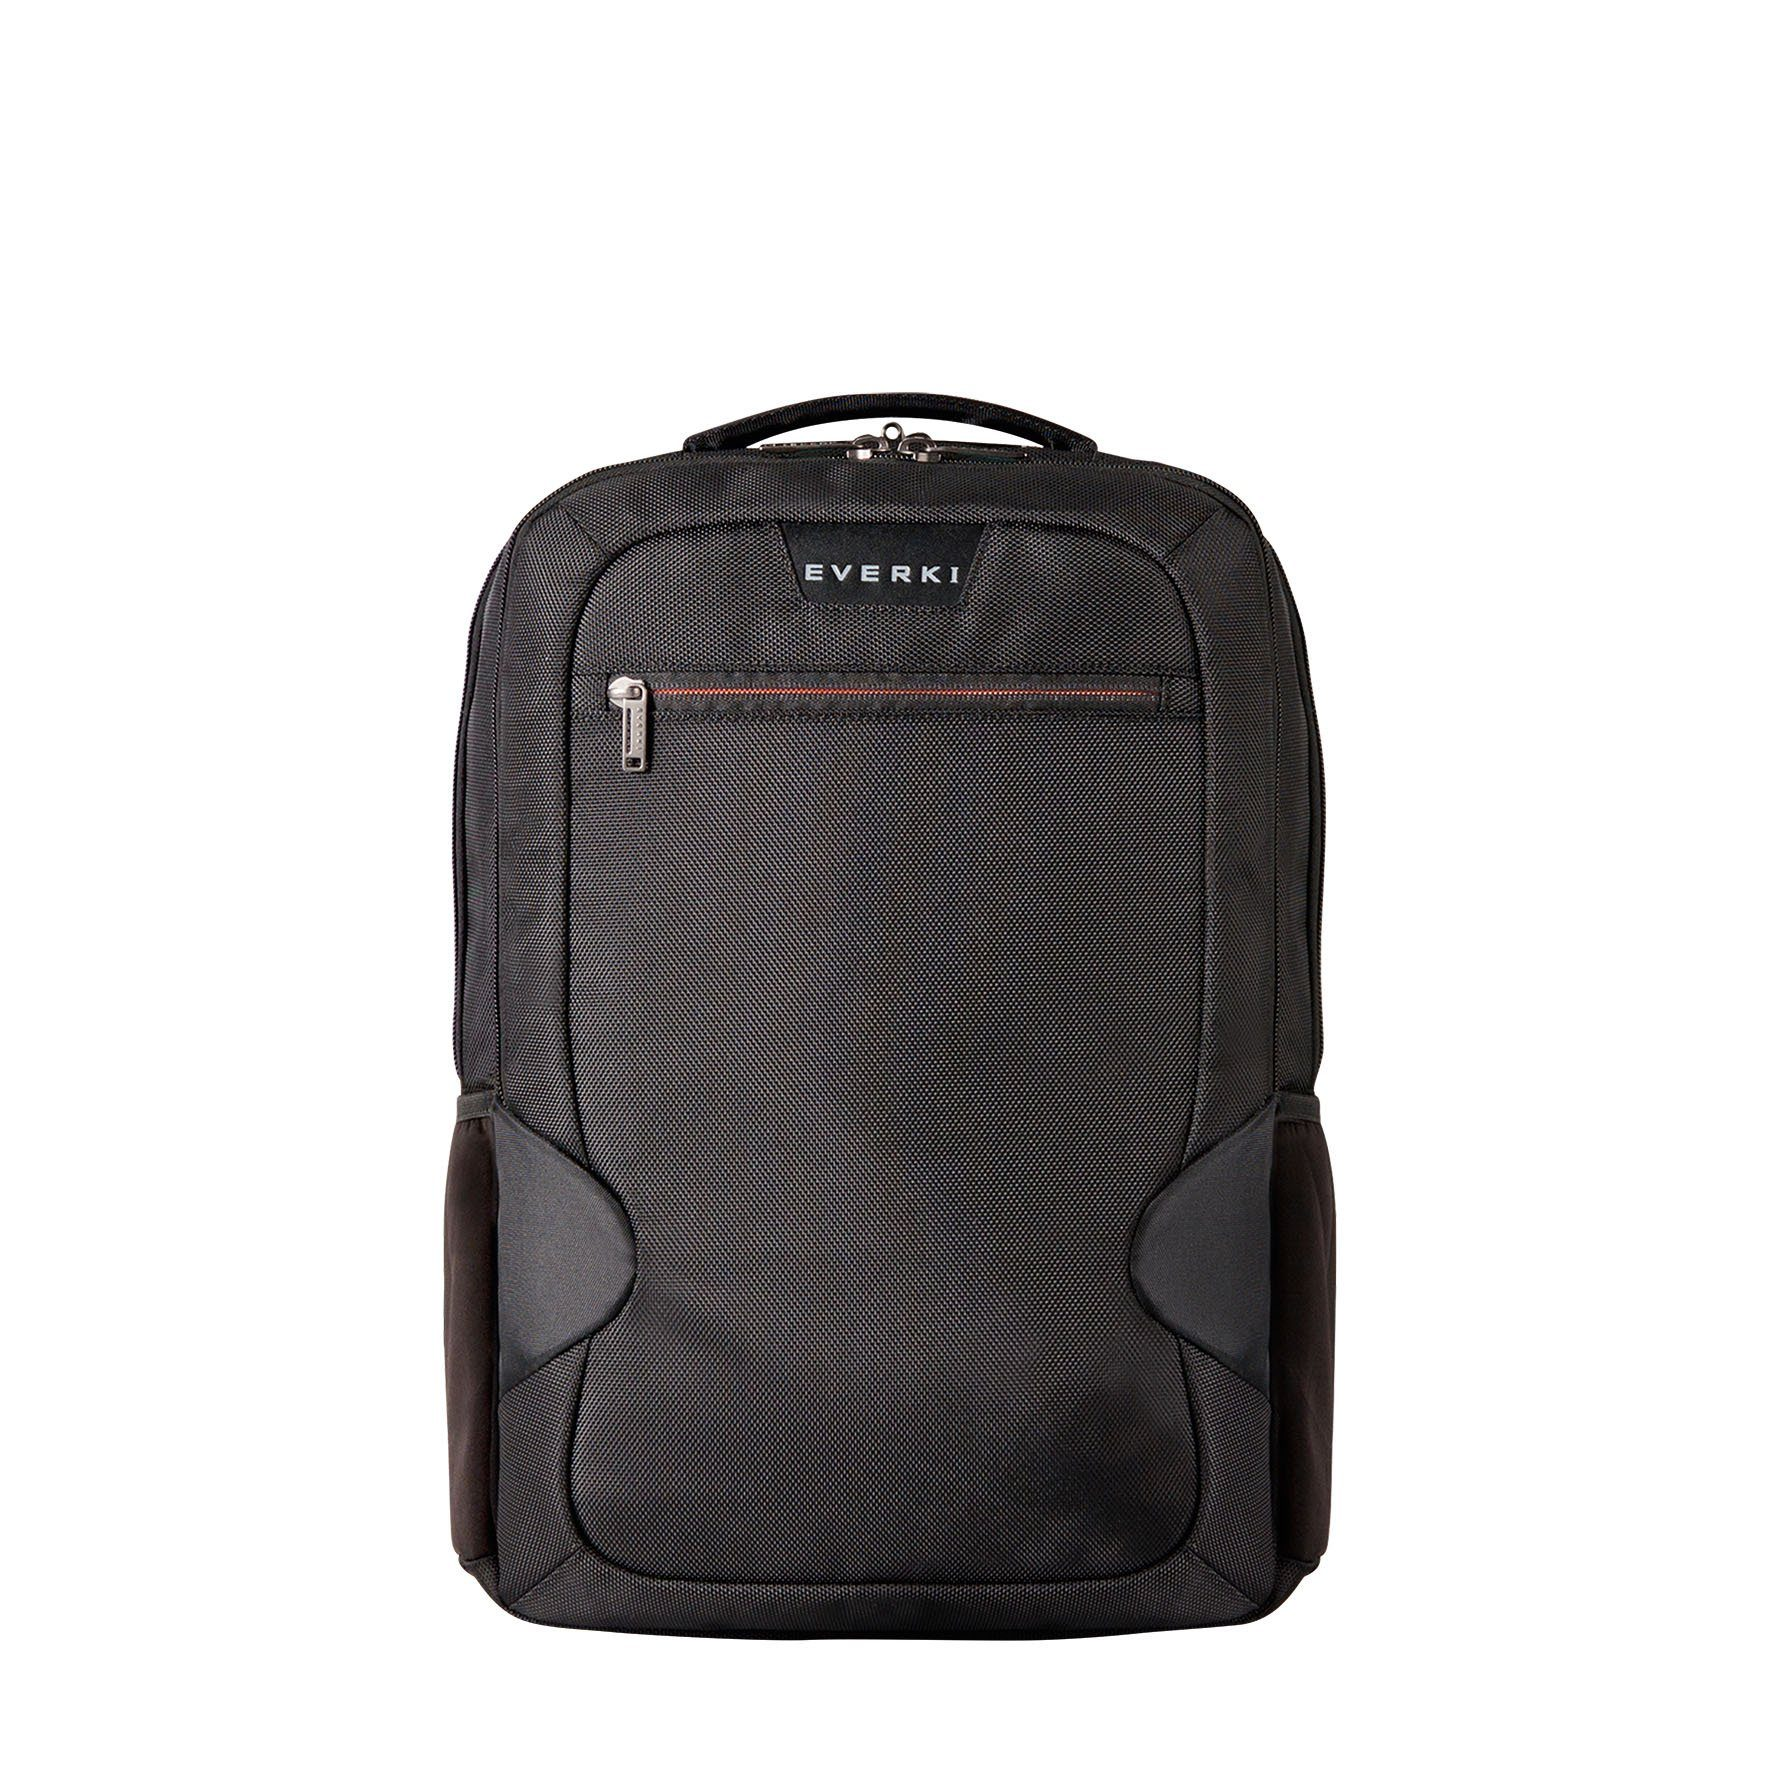 "Everki Laptop-Rucksack »Studio Slim 14,1""«"